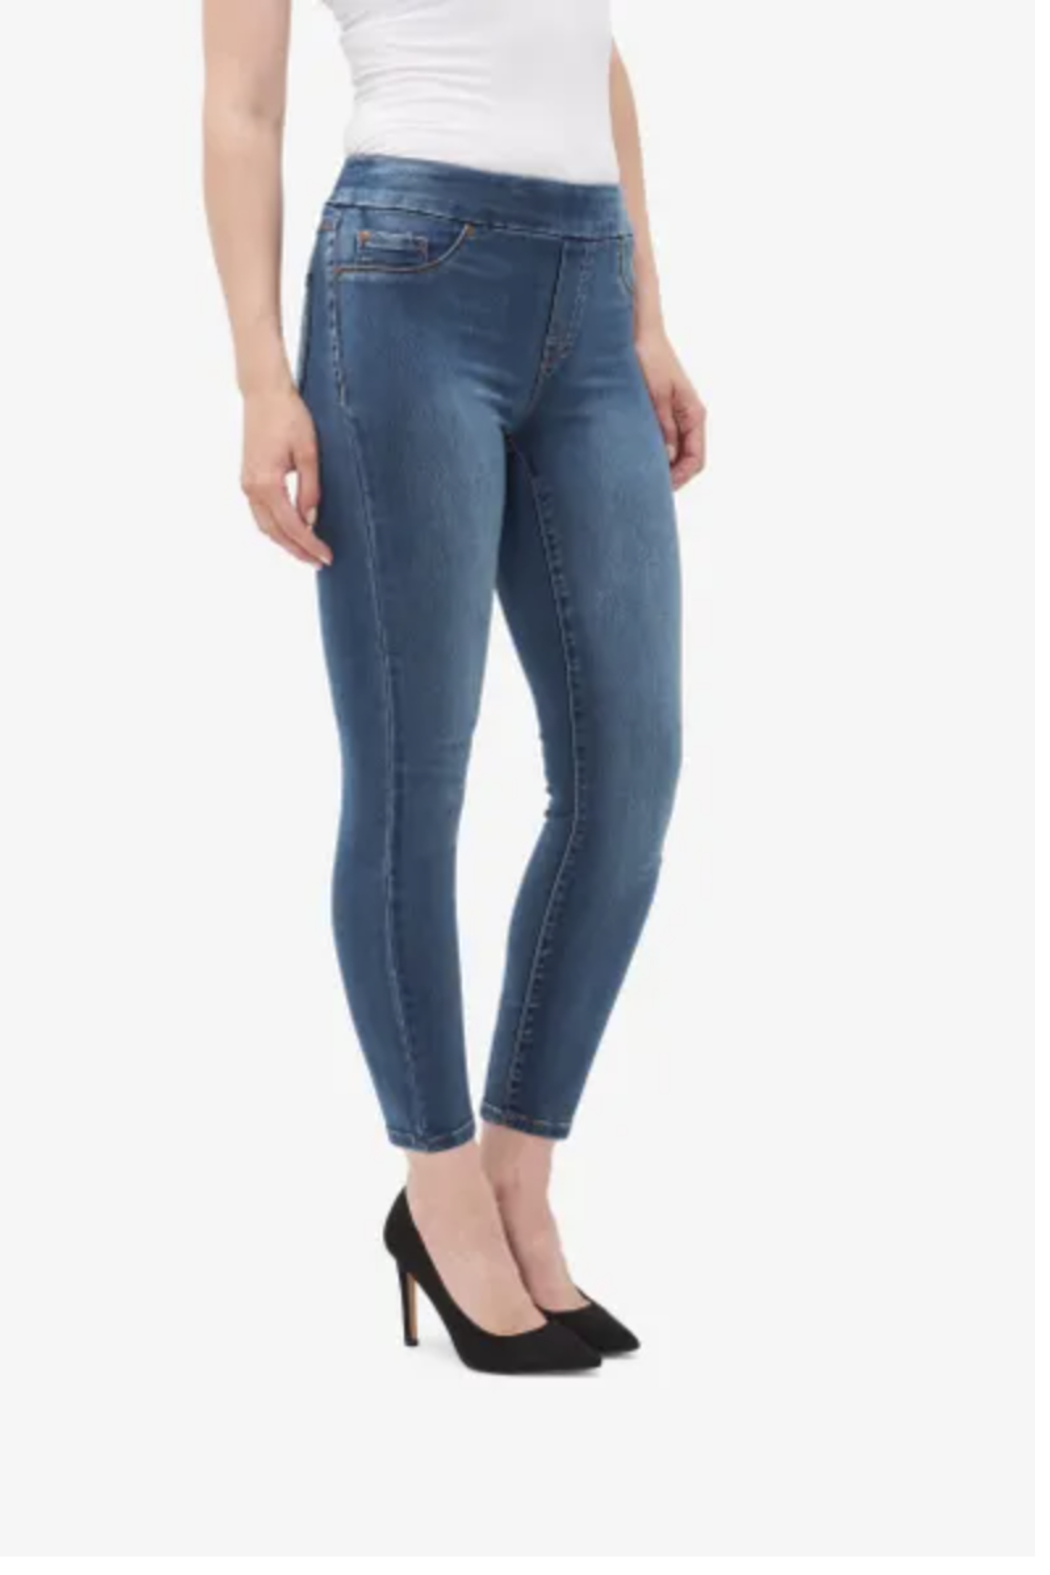 Tribal  5056O-1385-PULL-ON ANKLE JEGGING-NAVY B. - Front Full Image